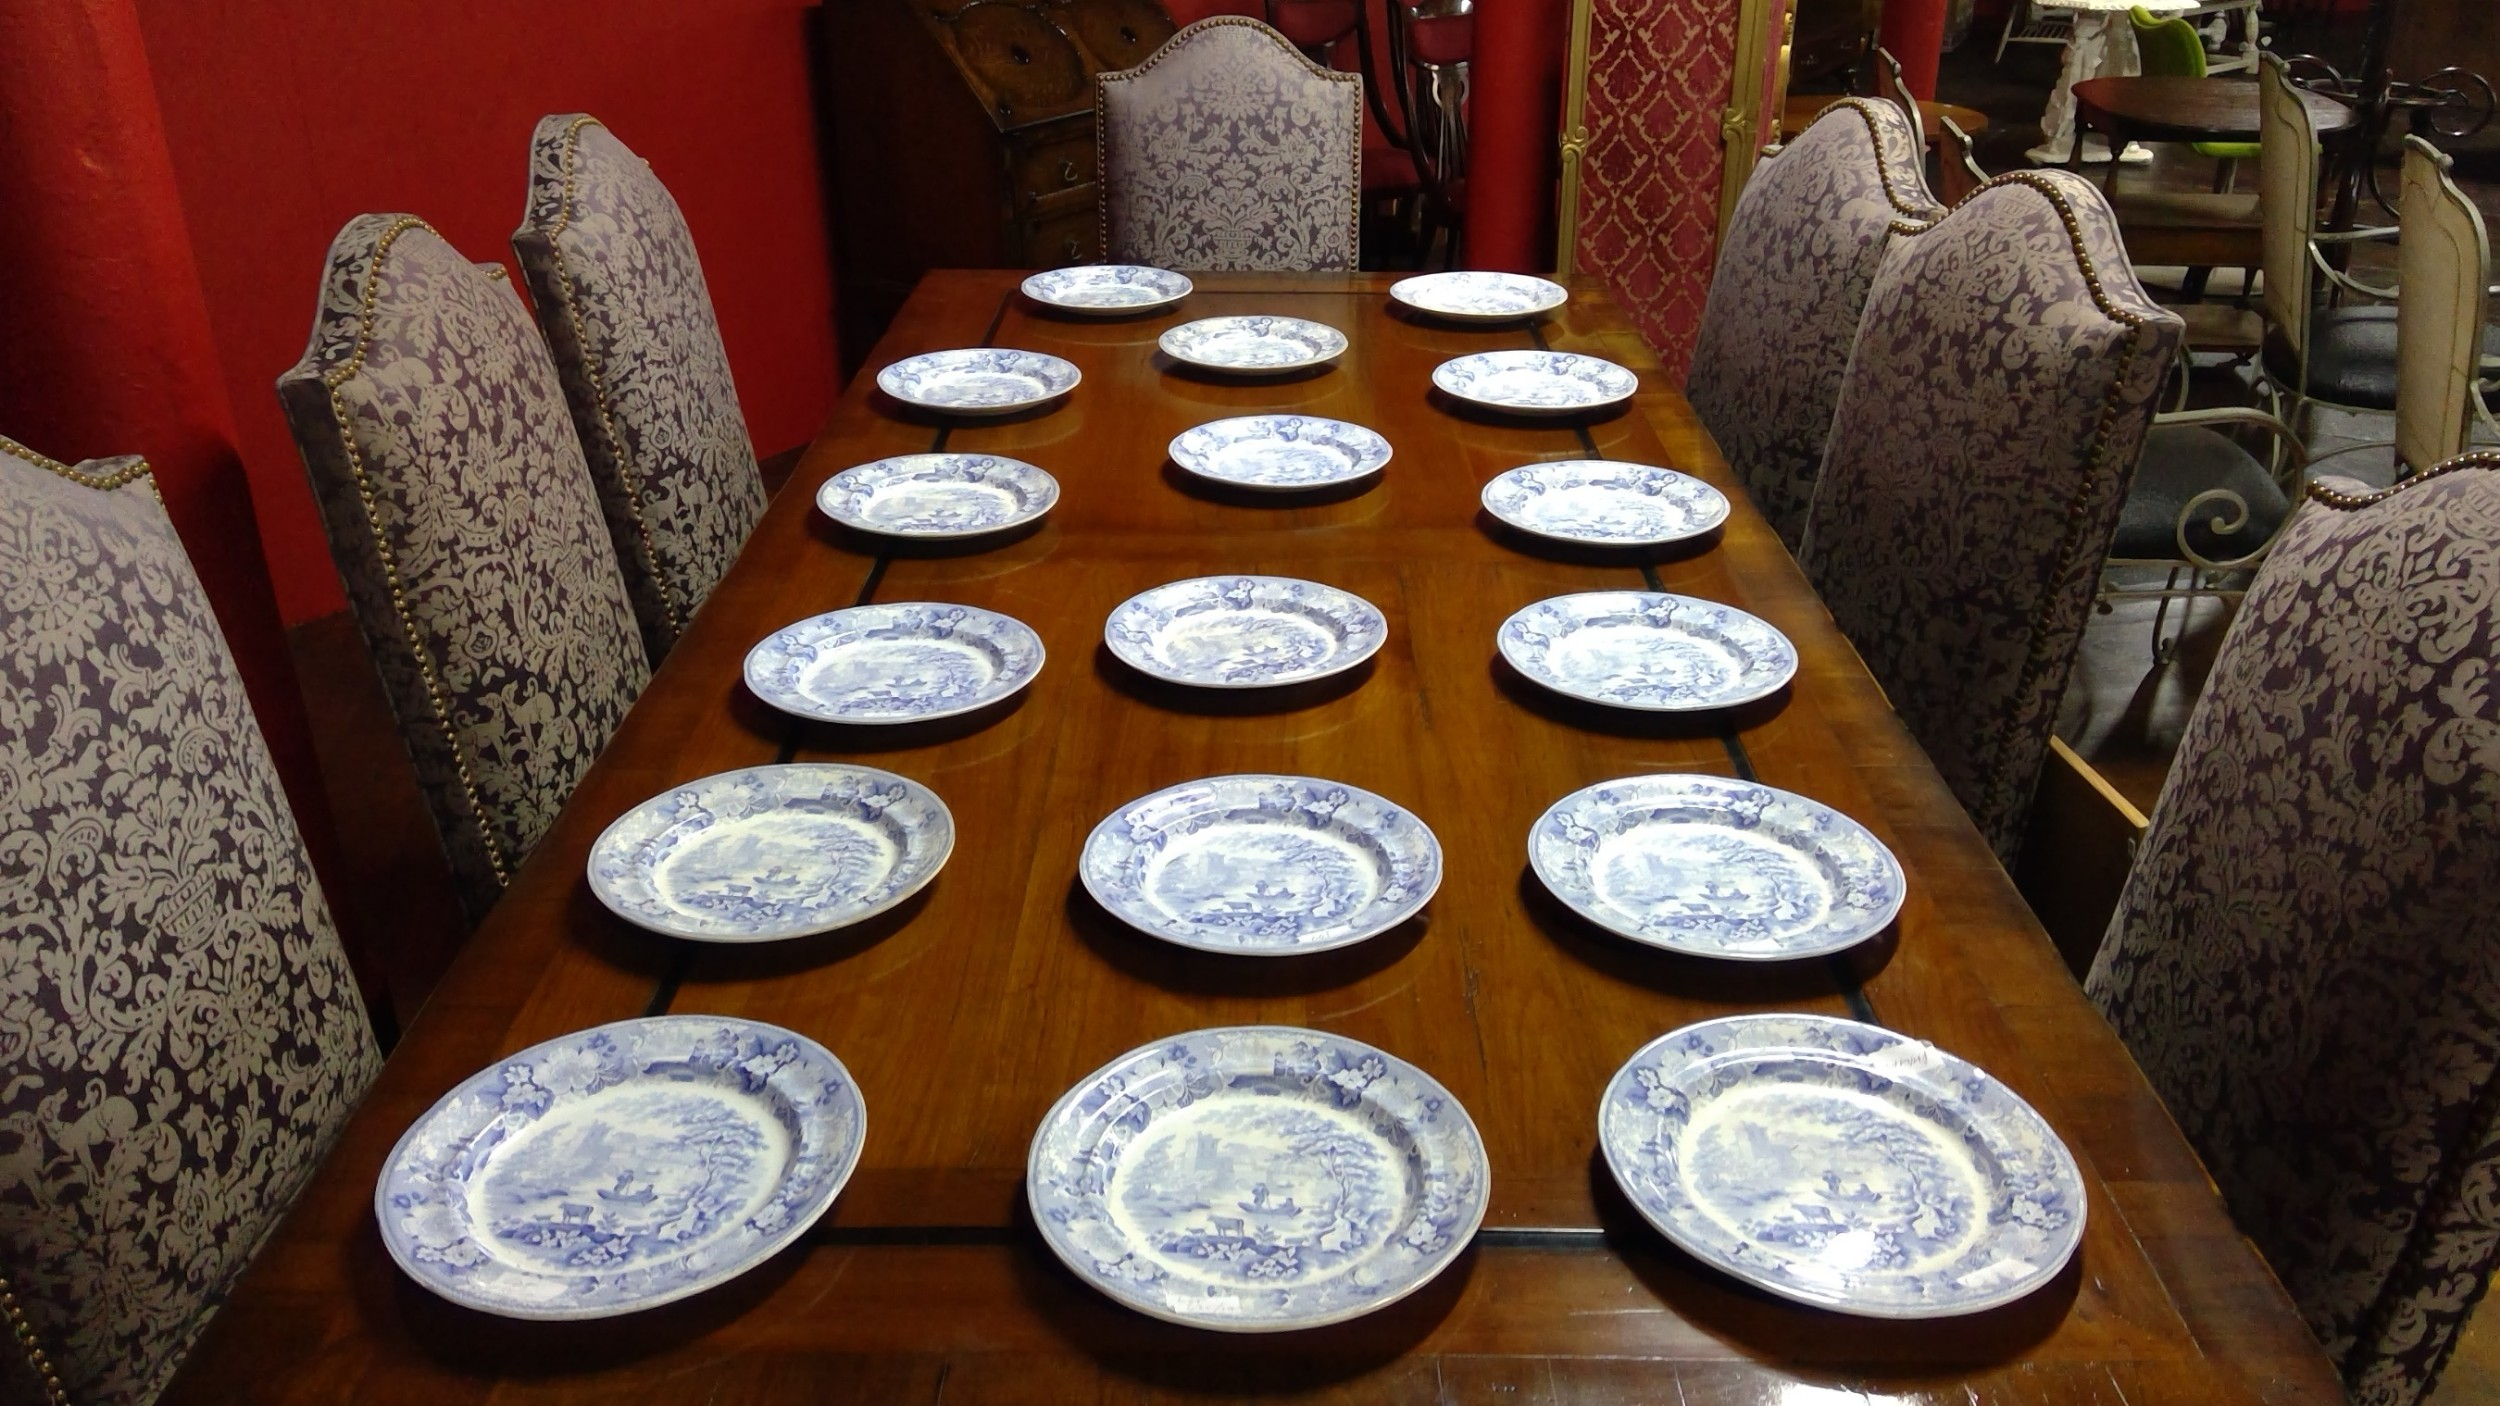 set of 17 staffordshire pottery antique light blue and white transfer printed dinner plates